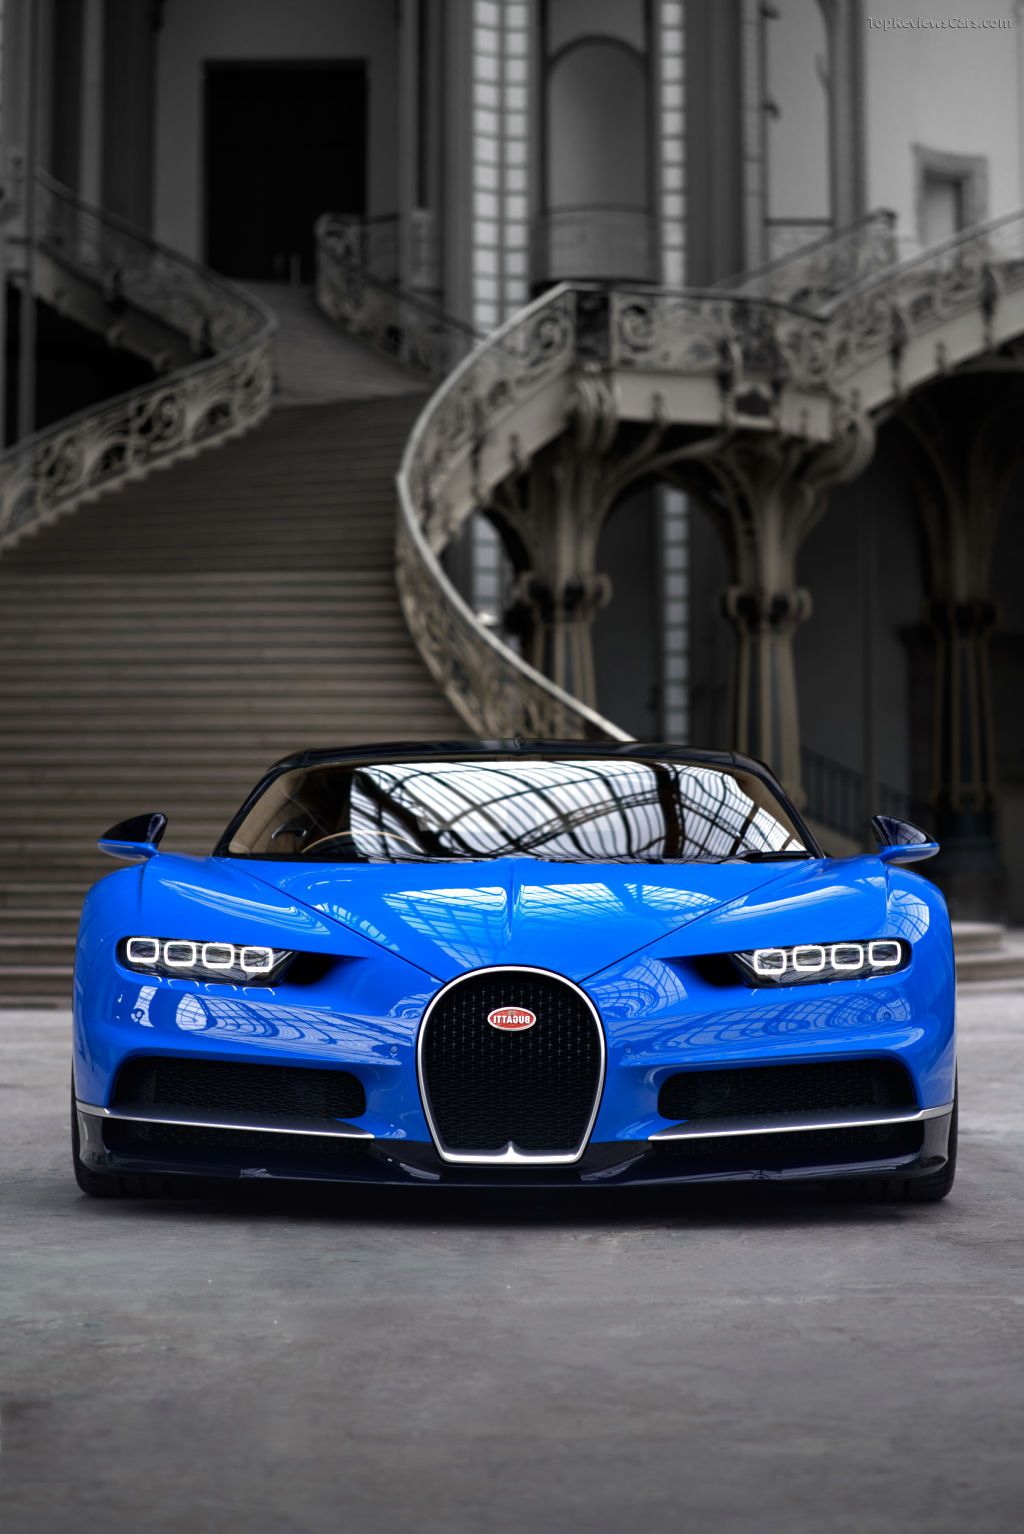 2020 Bugatti Chiron Grand Sport For Sale Uk Wallpaper Desktop WOW